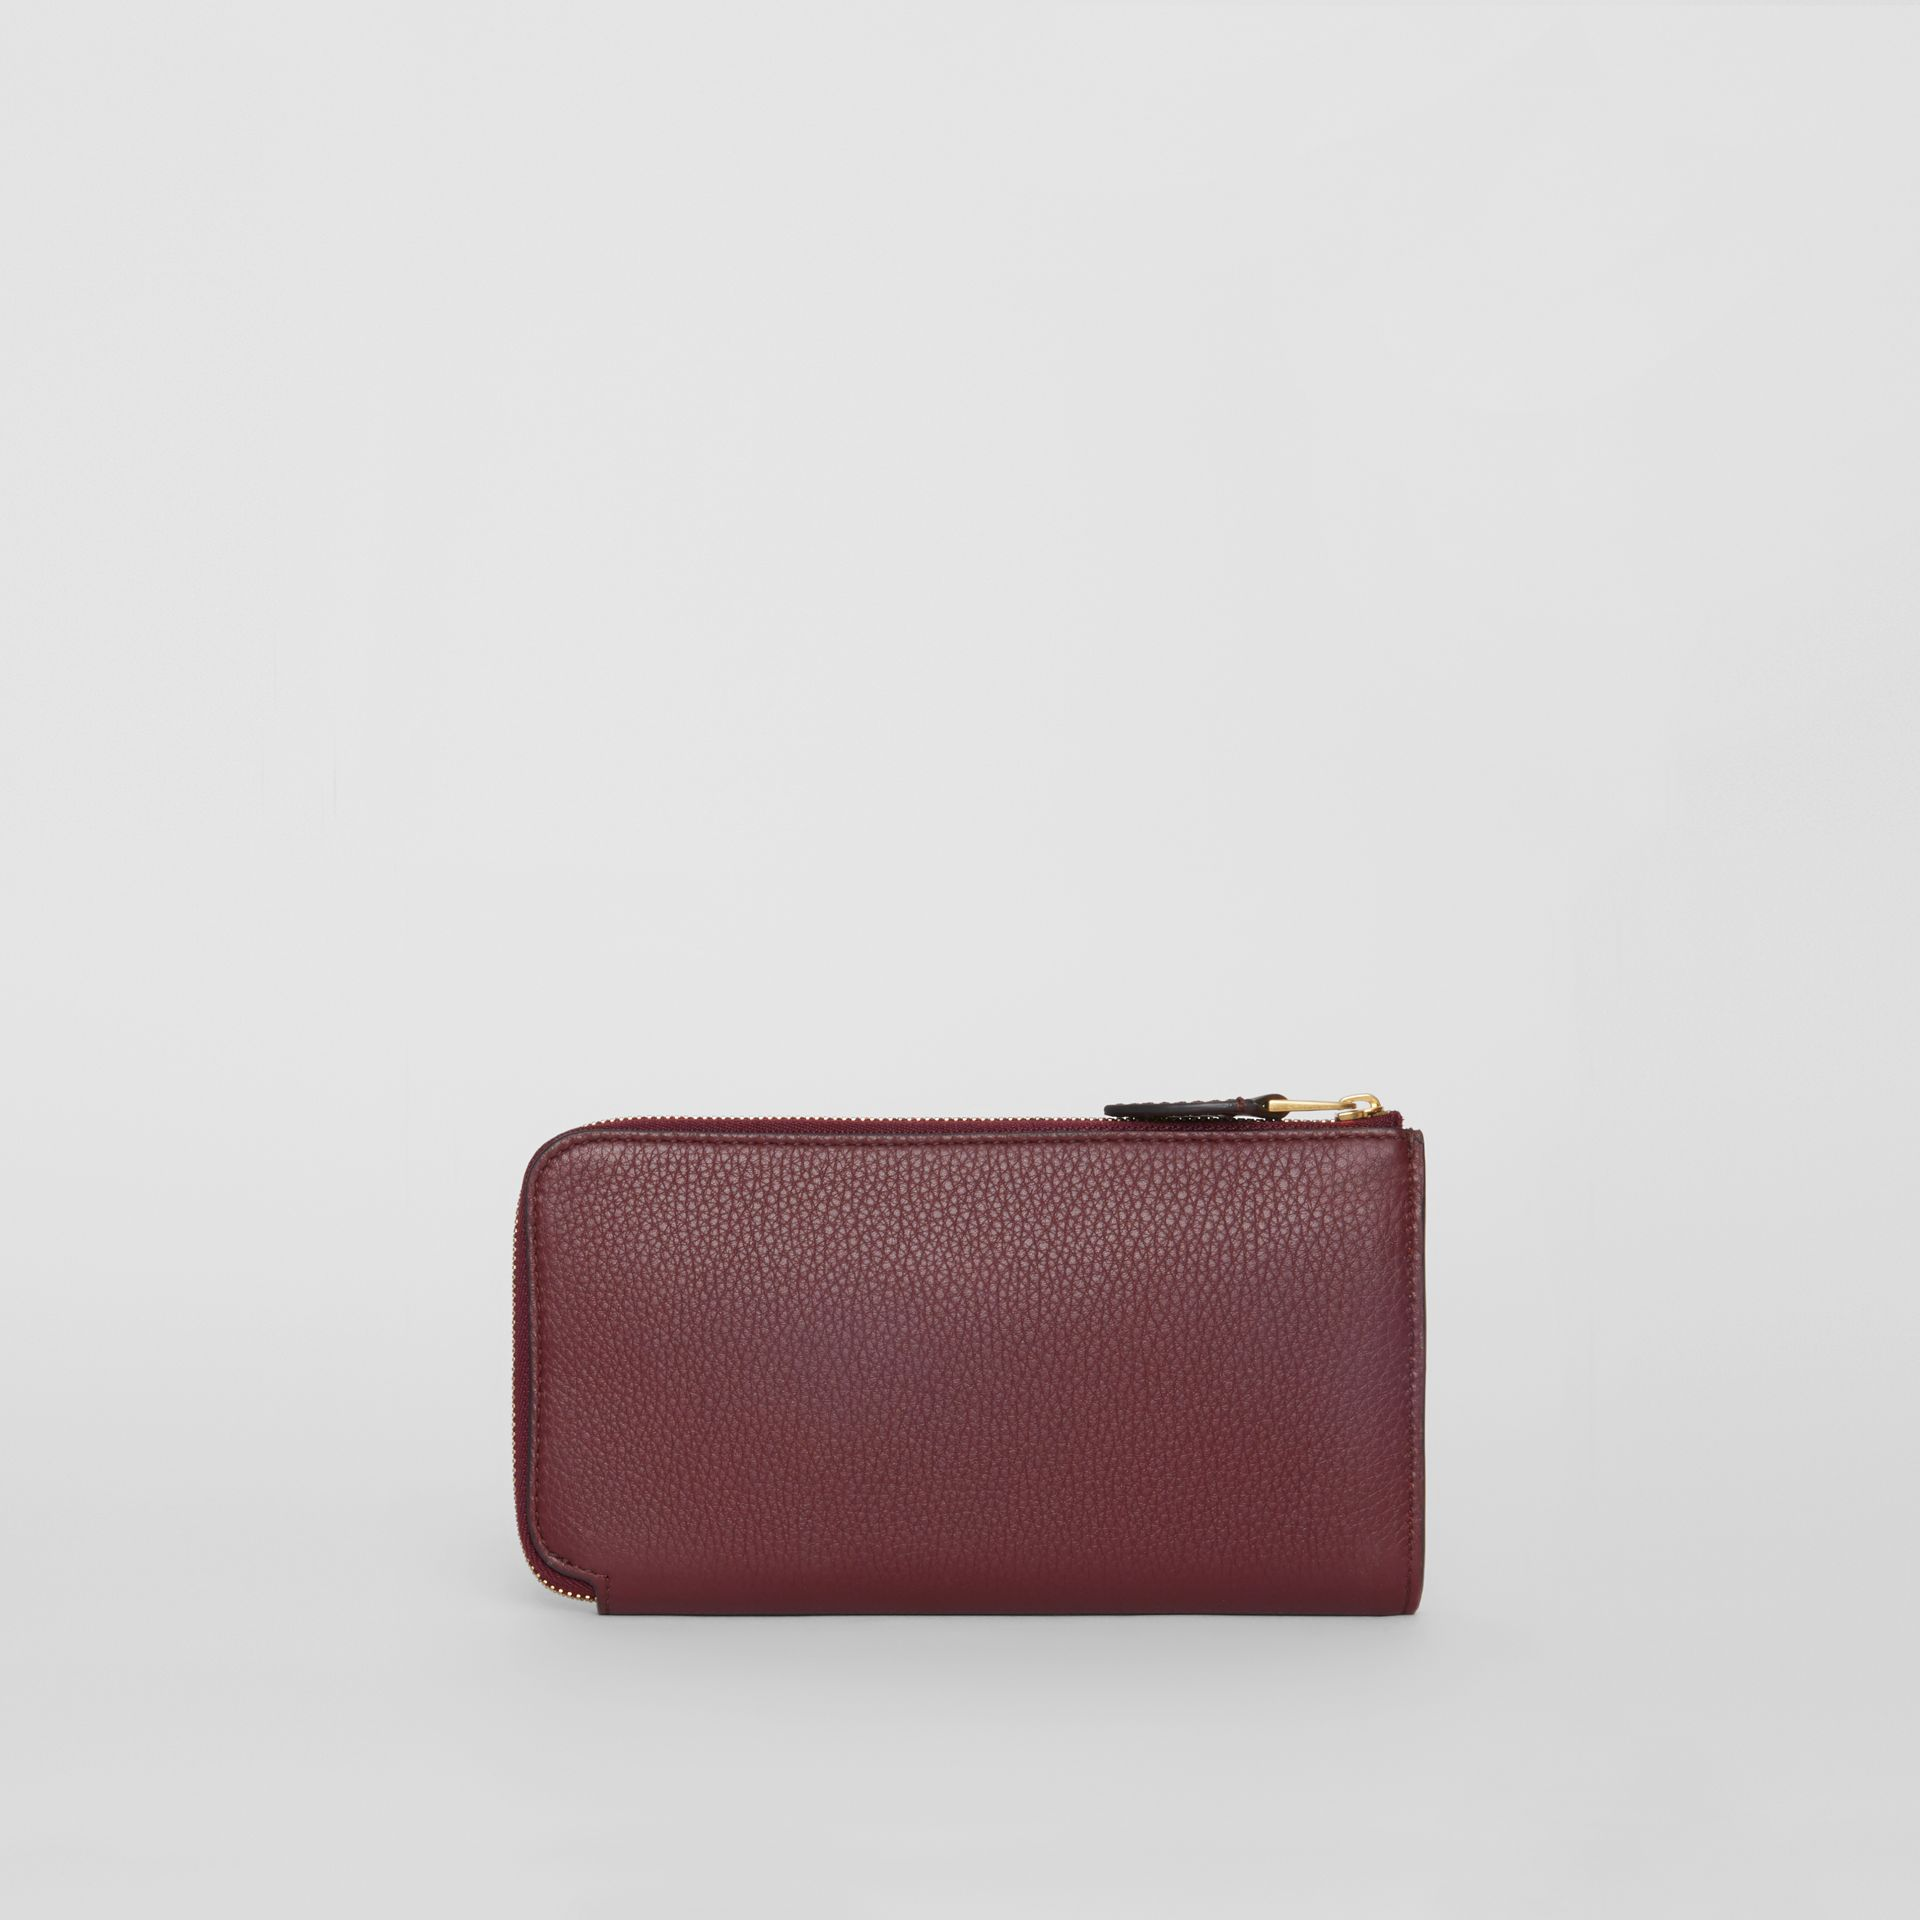 Two-tone Leather Ziparound Wallet and Coin Case in Deep Claret - Women | Burberry Australia - gallery image 5